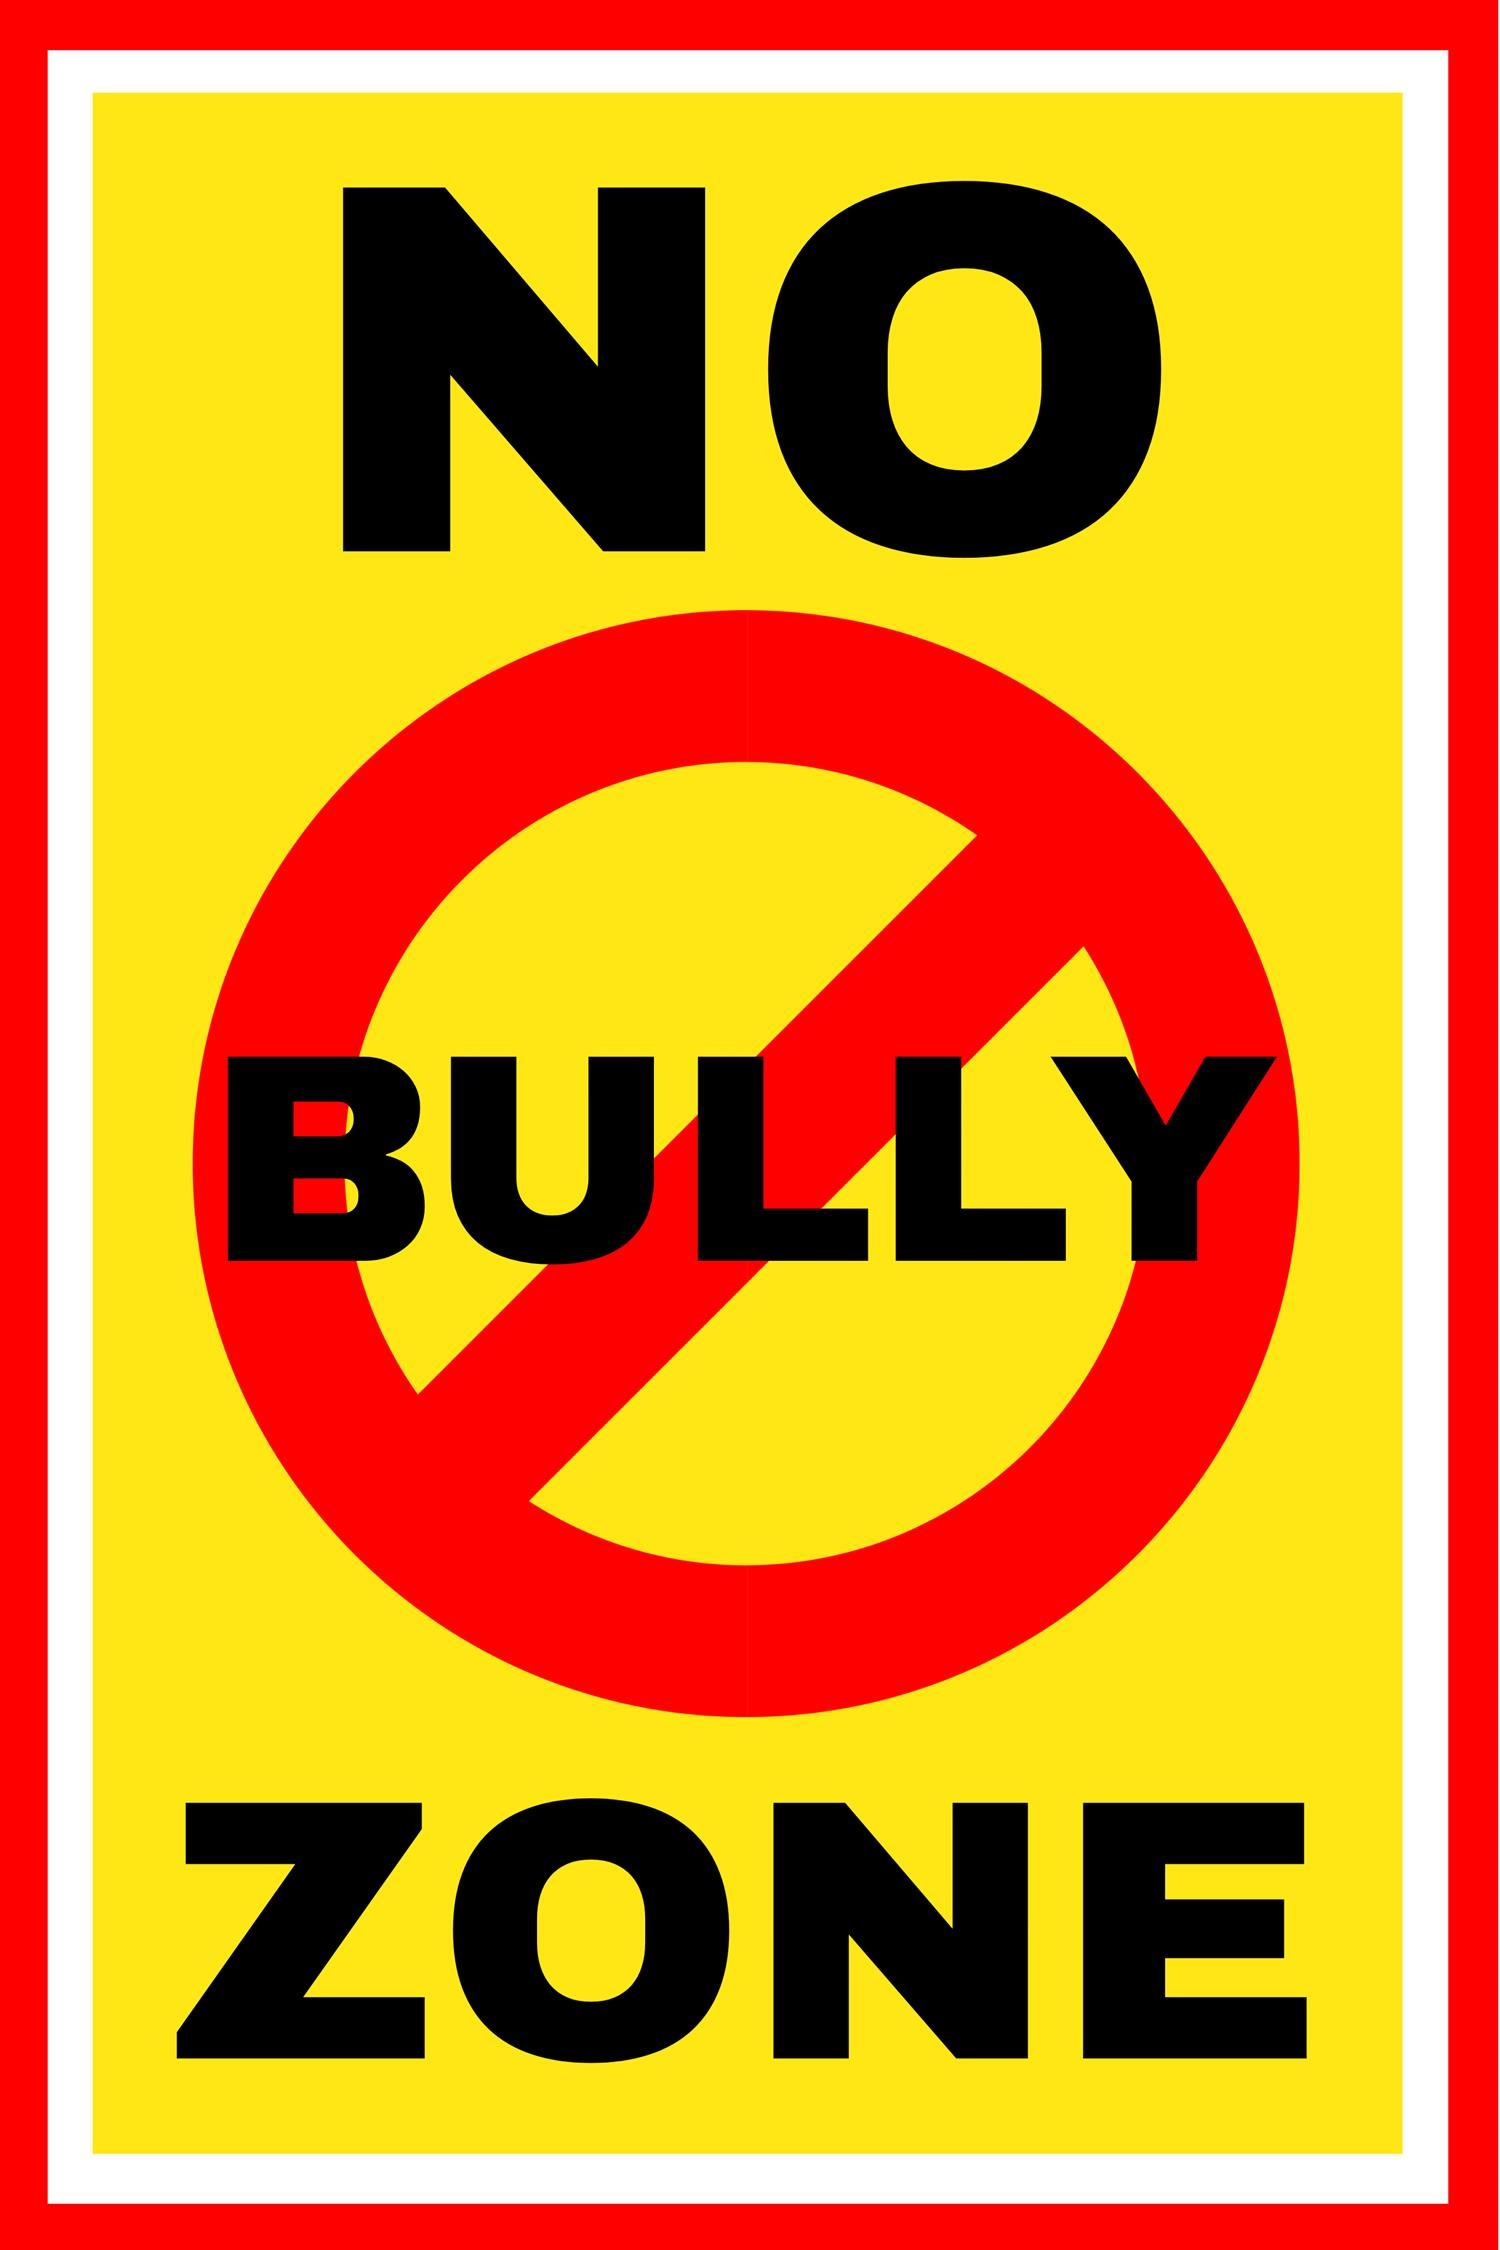 Bullying Prevention Information and Policies